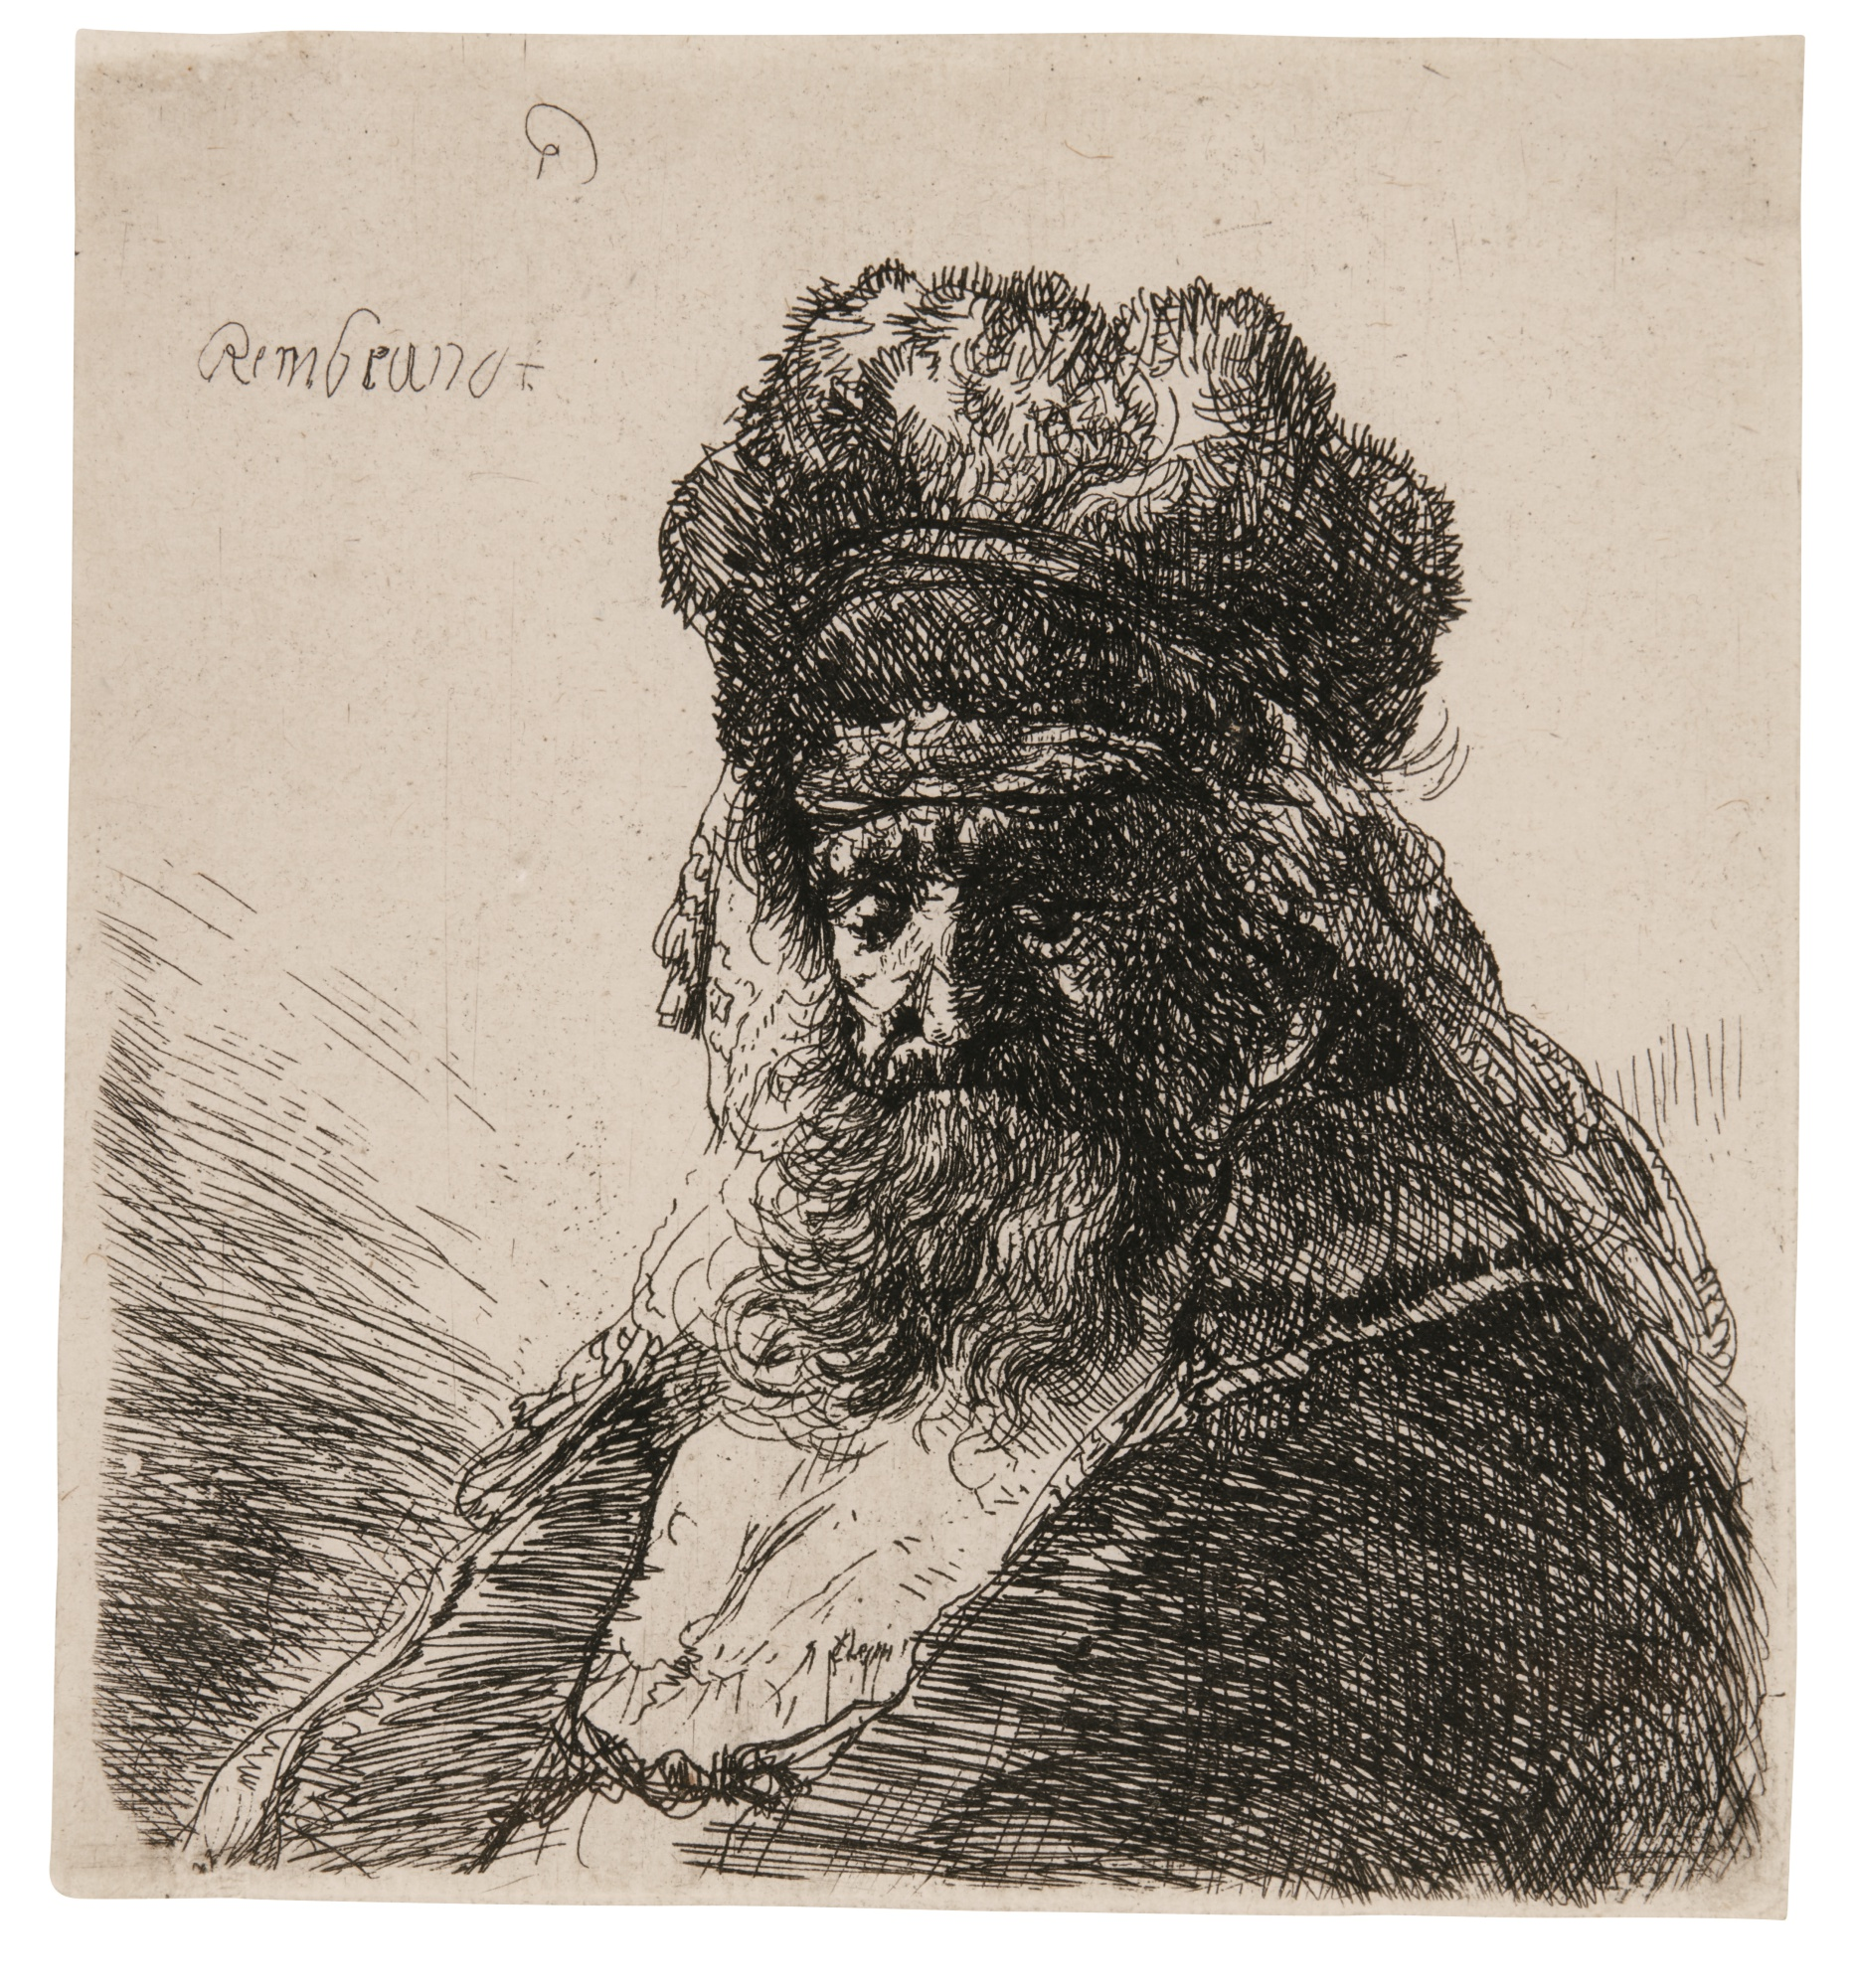 Rembrandt van Rijn-Old Bearded Man In A High Fur Cap, With Eyes Closed (B., Holl. 290; New Holl. 148; H. 130)-